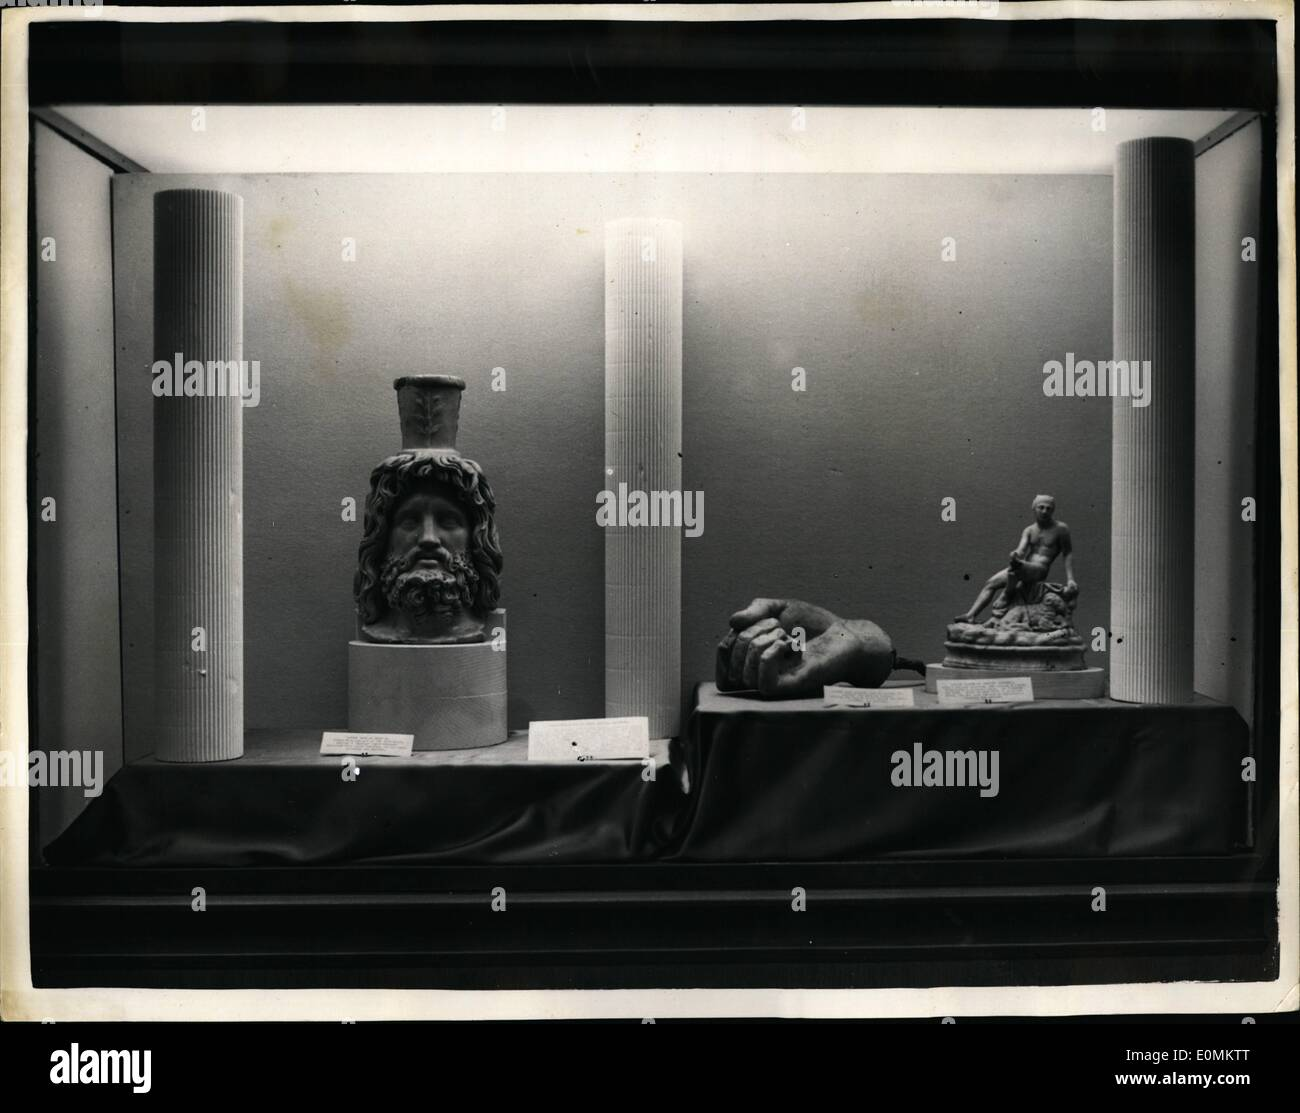 Oct. 10, 1955 - Archaeology Exhibition at Royal Exchange; An exhibition organized by the London and Middlesex Archaelogical Society to mark their centenary, was opened today at the Royal exchange by the Lord Mayor of London, Sir Saymour Howard. Photo Shows Sculpture found in the Roman Temple, Walbrook City, seen at the exhibition. On Left, Head of Serapis and on right figure of Mercury. - Stock Image